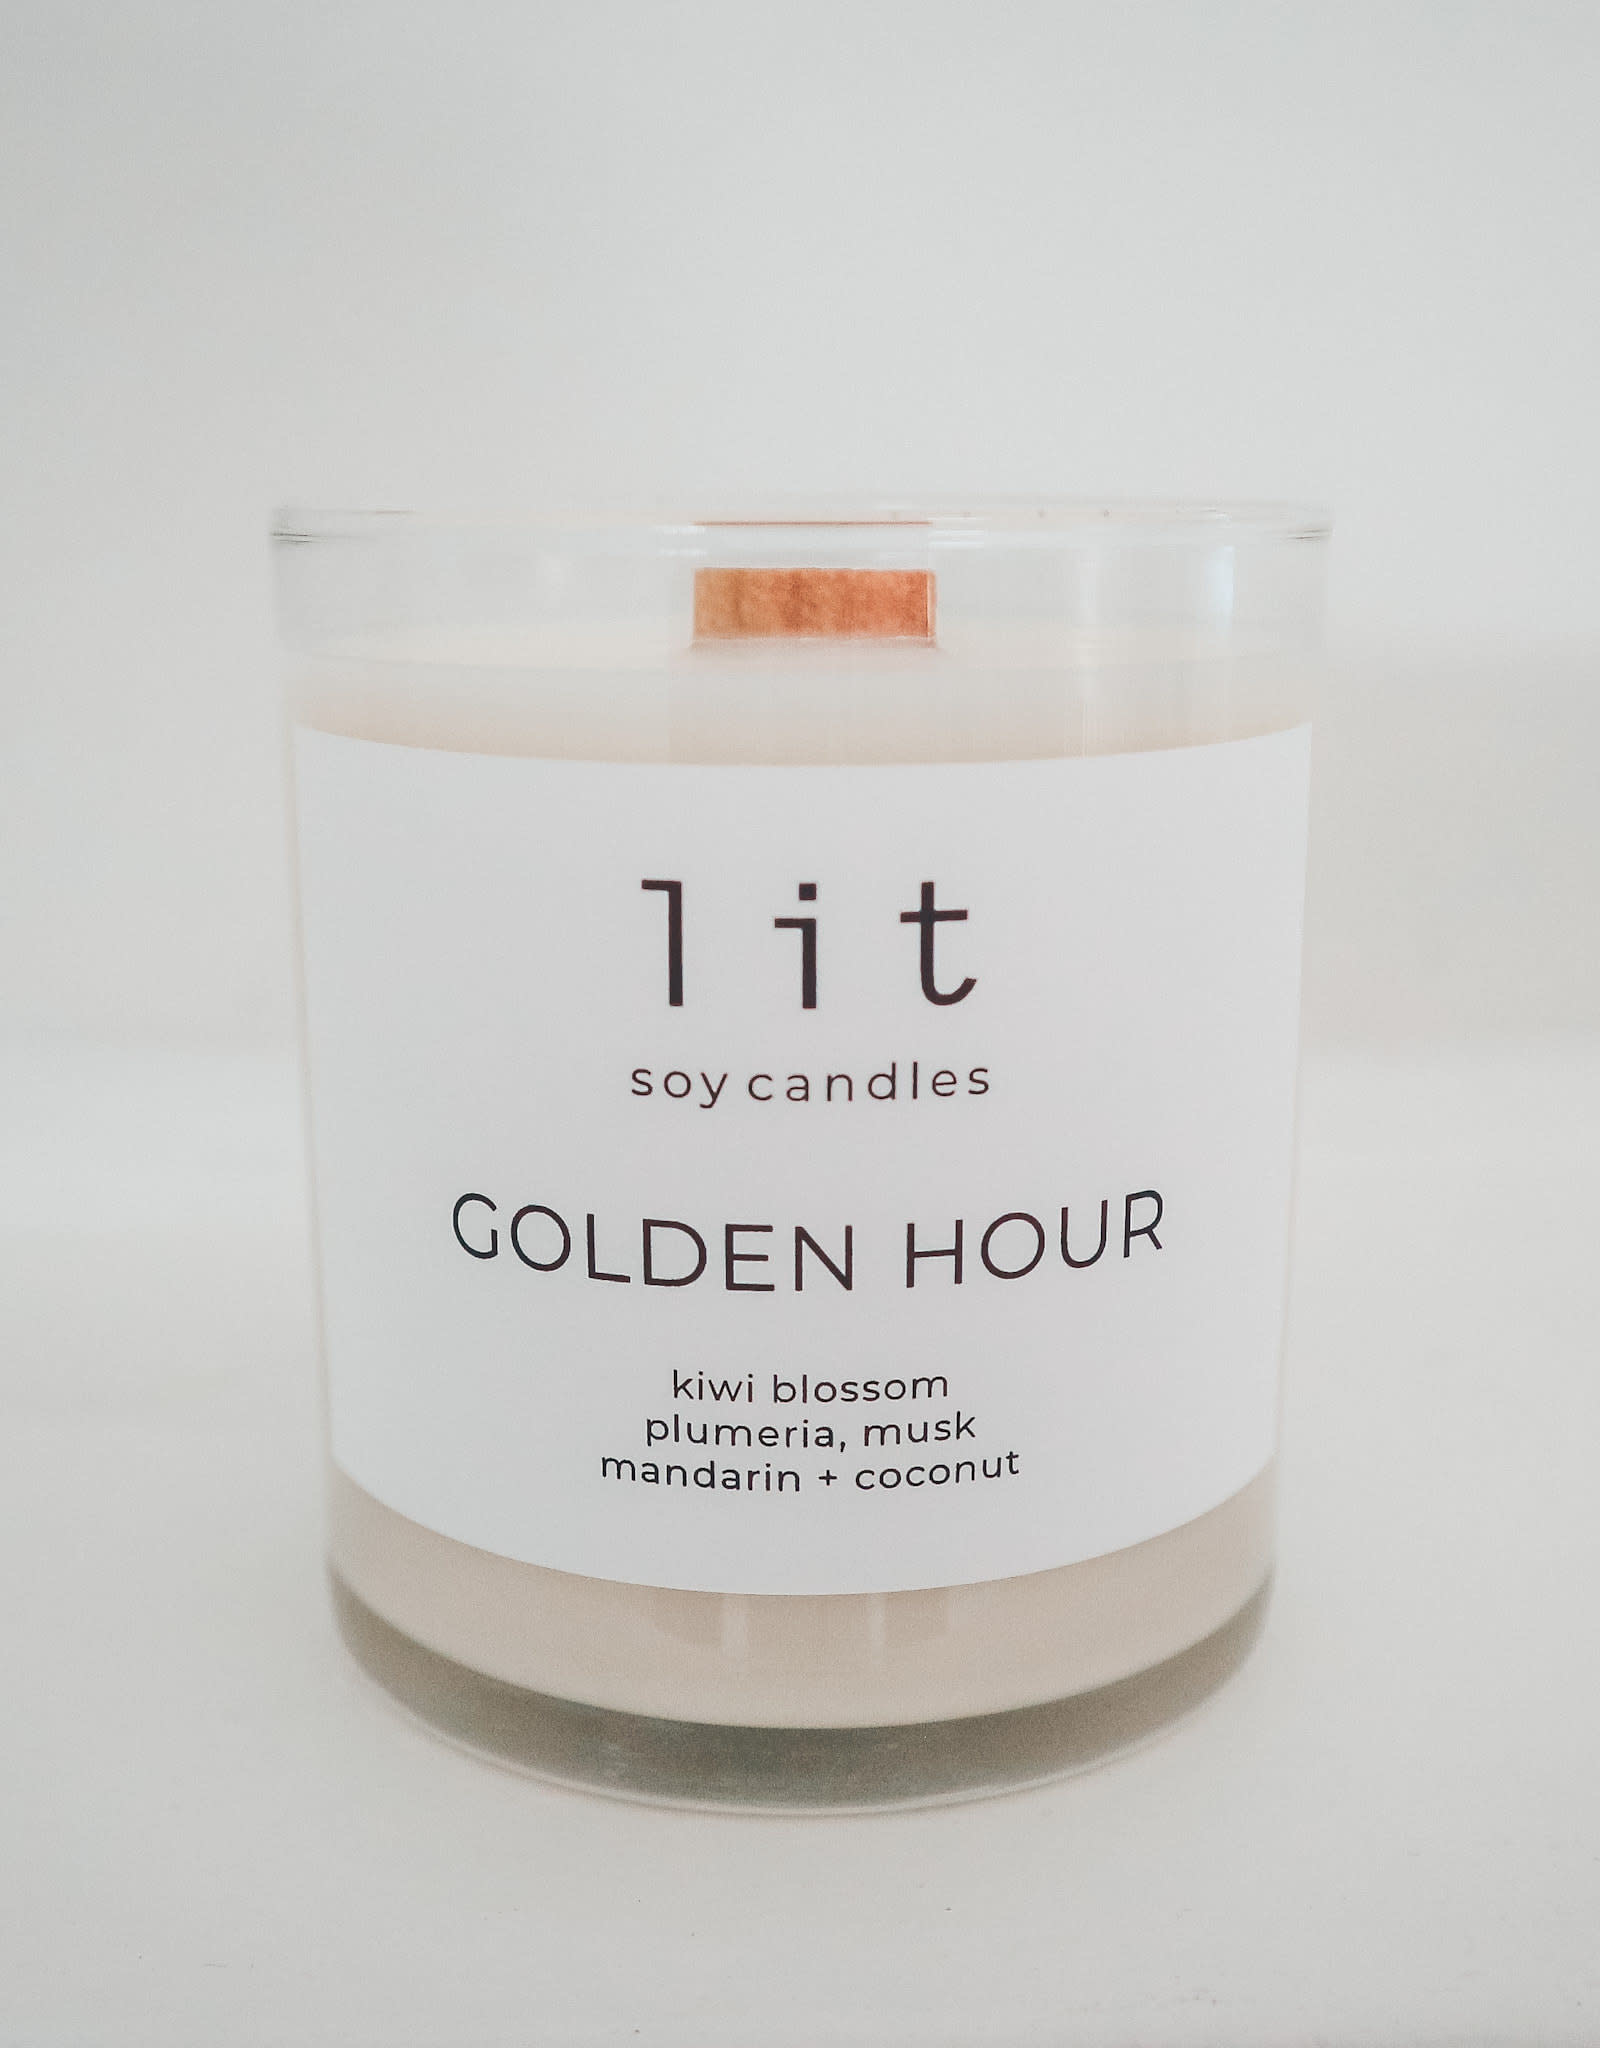 Lit soy candles, Golden Hour